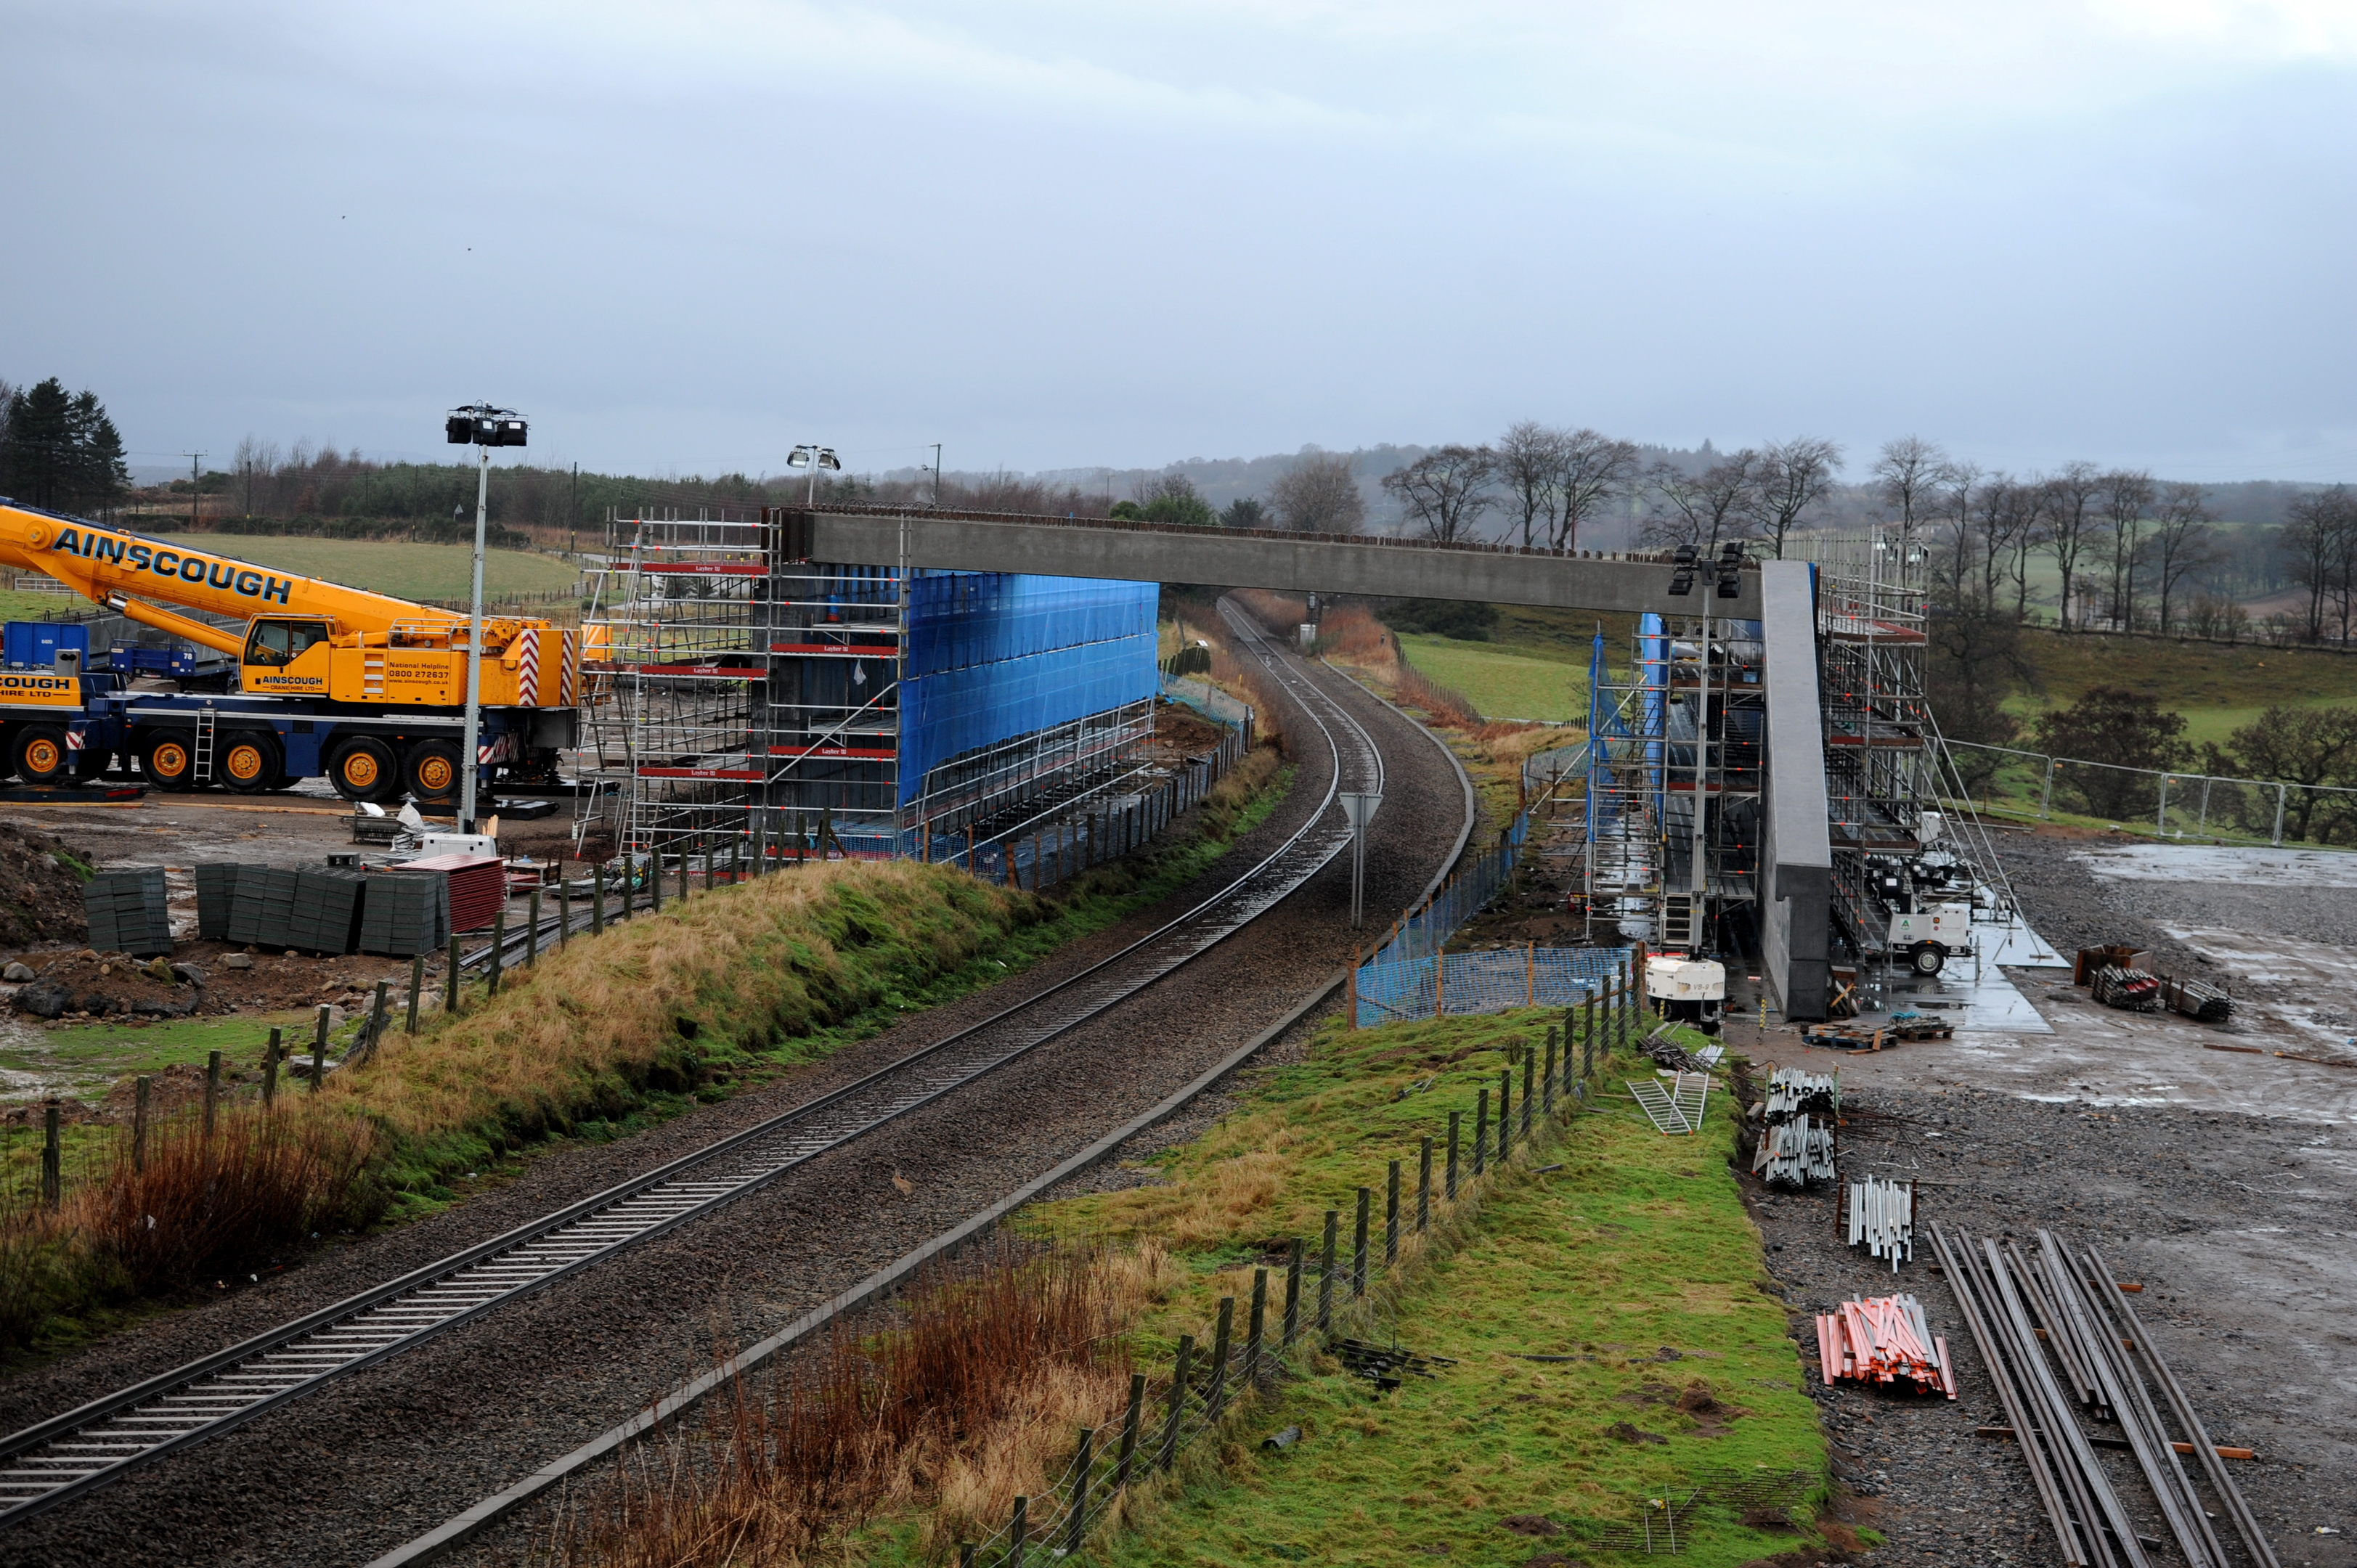 The site of the new bridge over the Aberdeen to Inverness railway line. picture by darrell benns